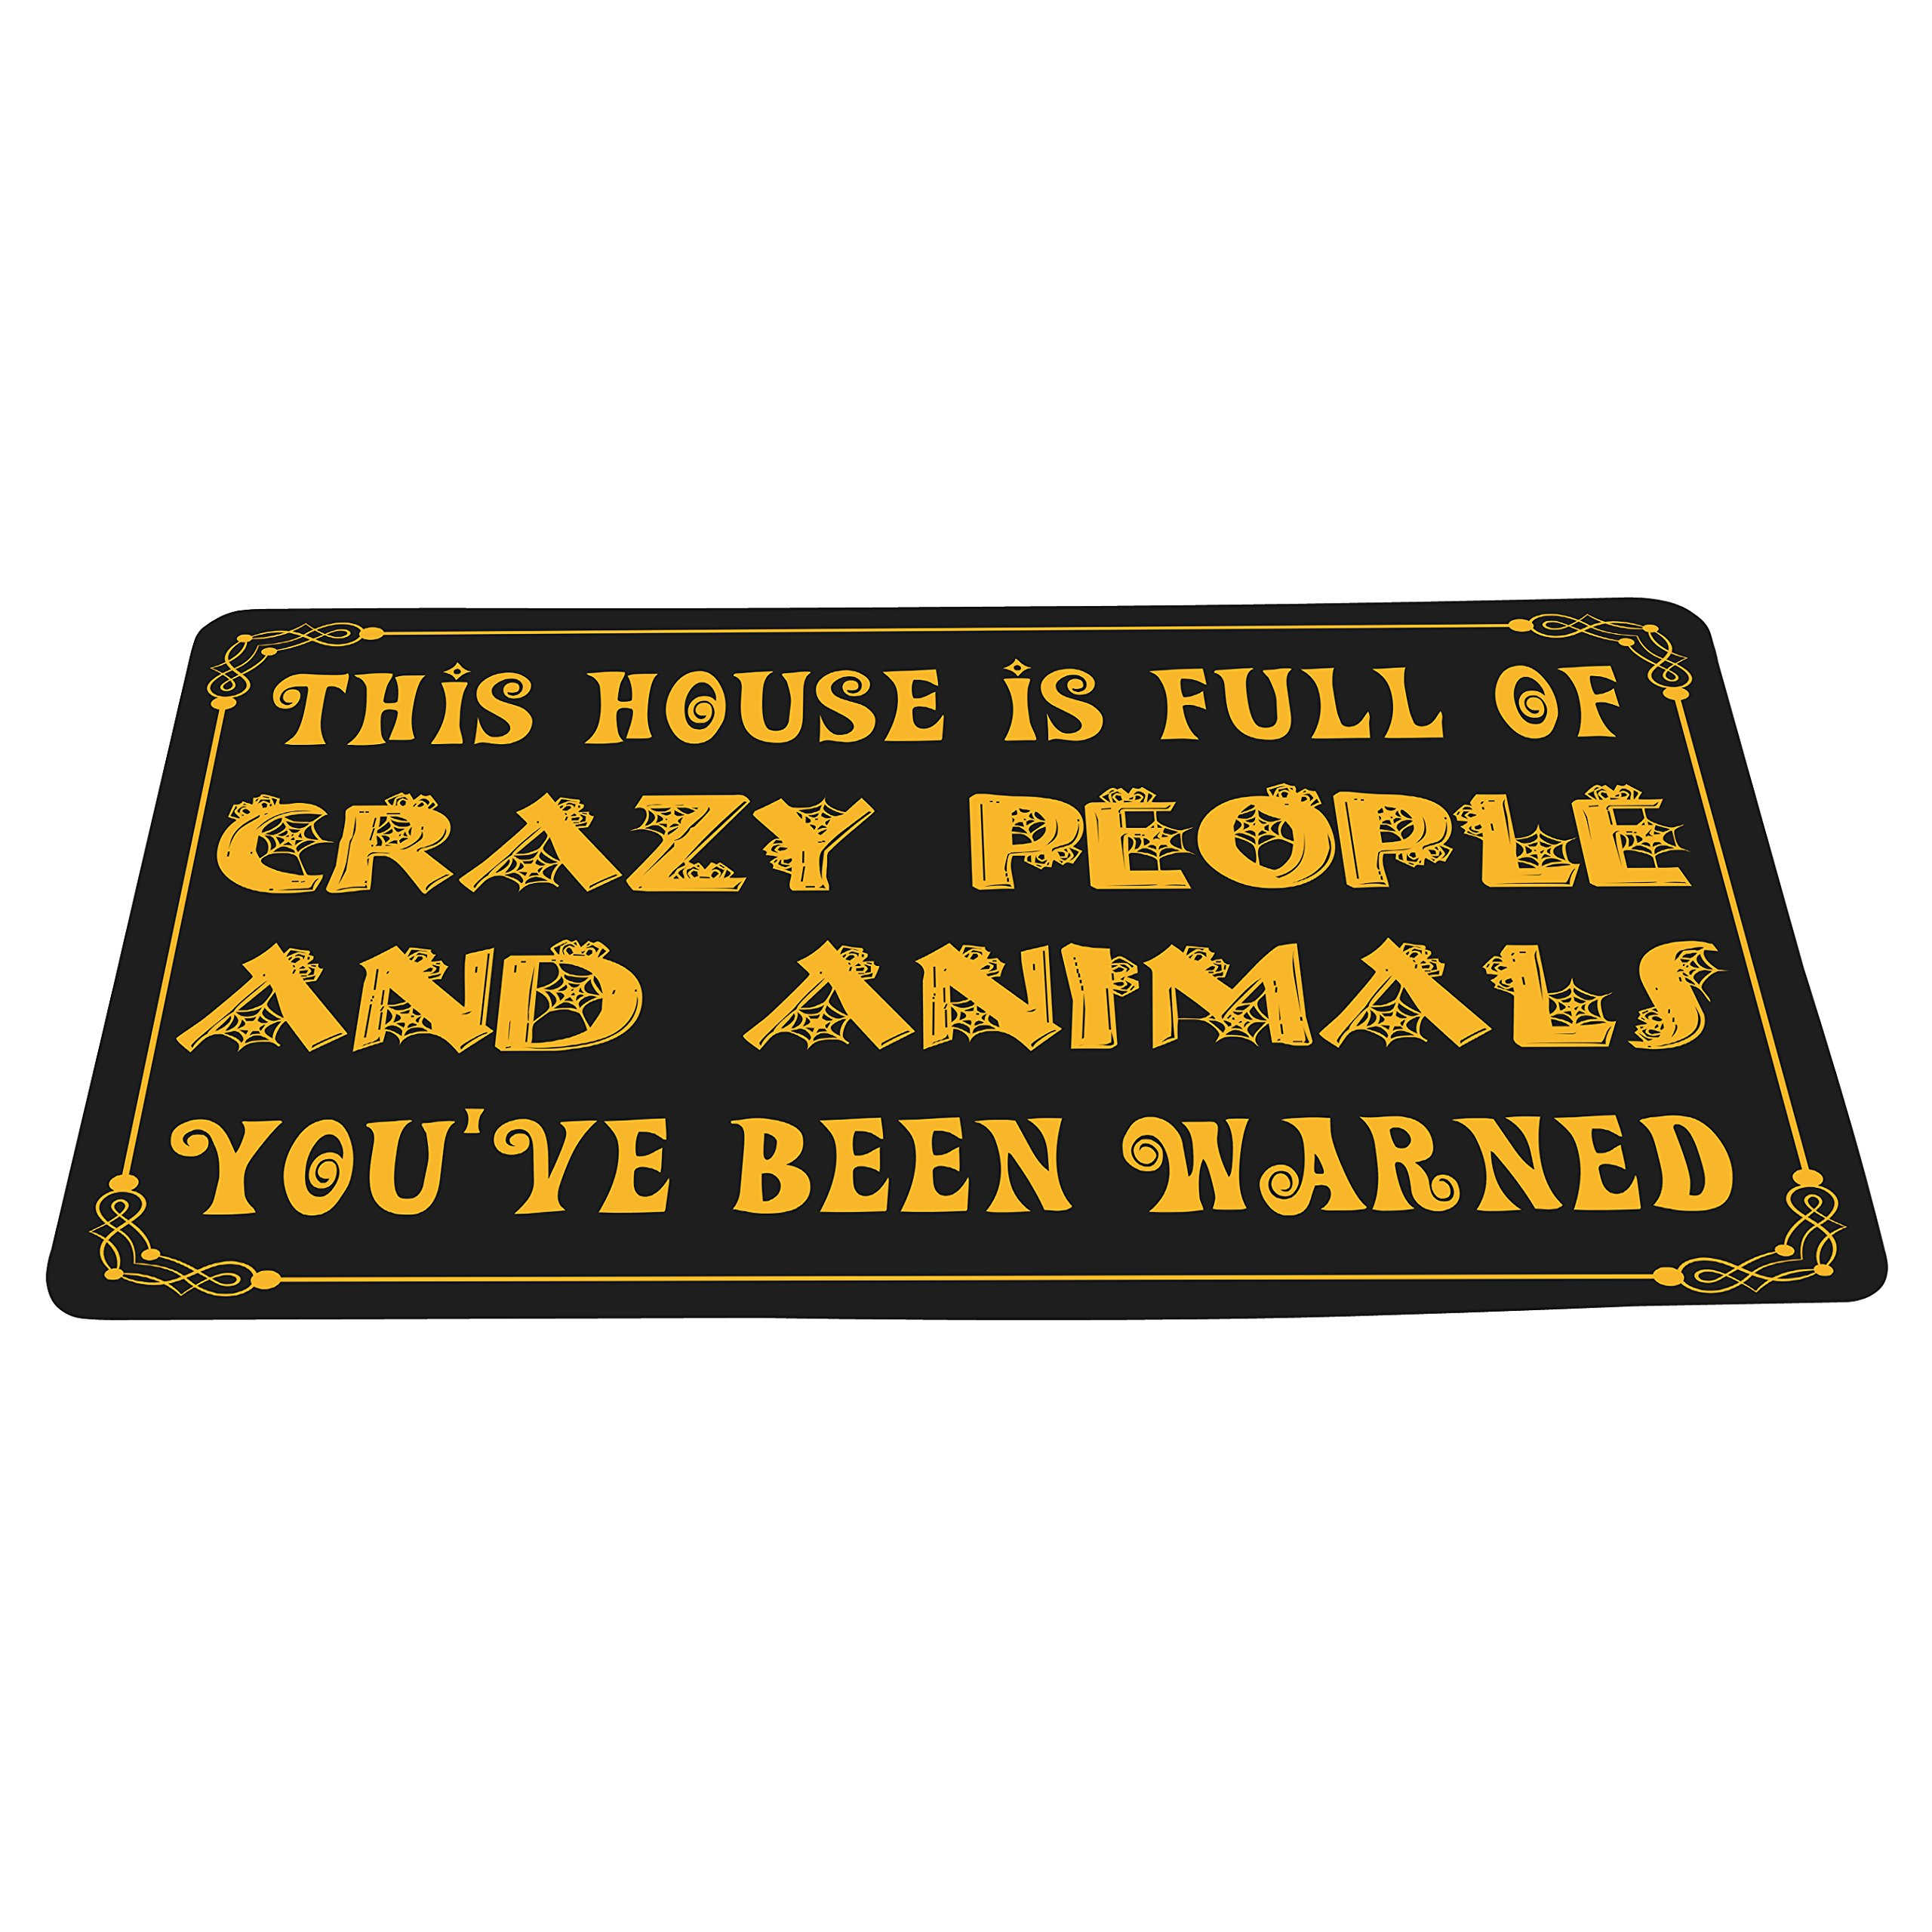 wizardry1986 This House Is Full Of Crazy People And Animals You've Been Warned Funny Floor Mat With Non-Slip Backing Novelty Bath Mat Rug Excellent Home Decor 16'' × 24''